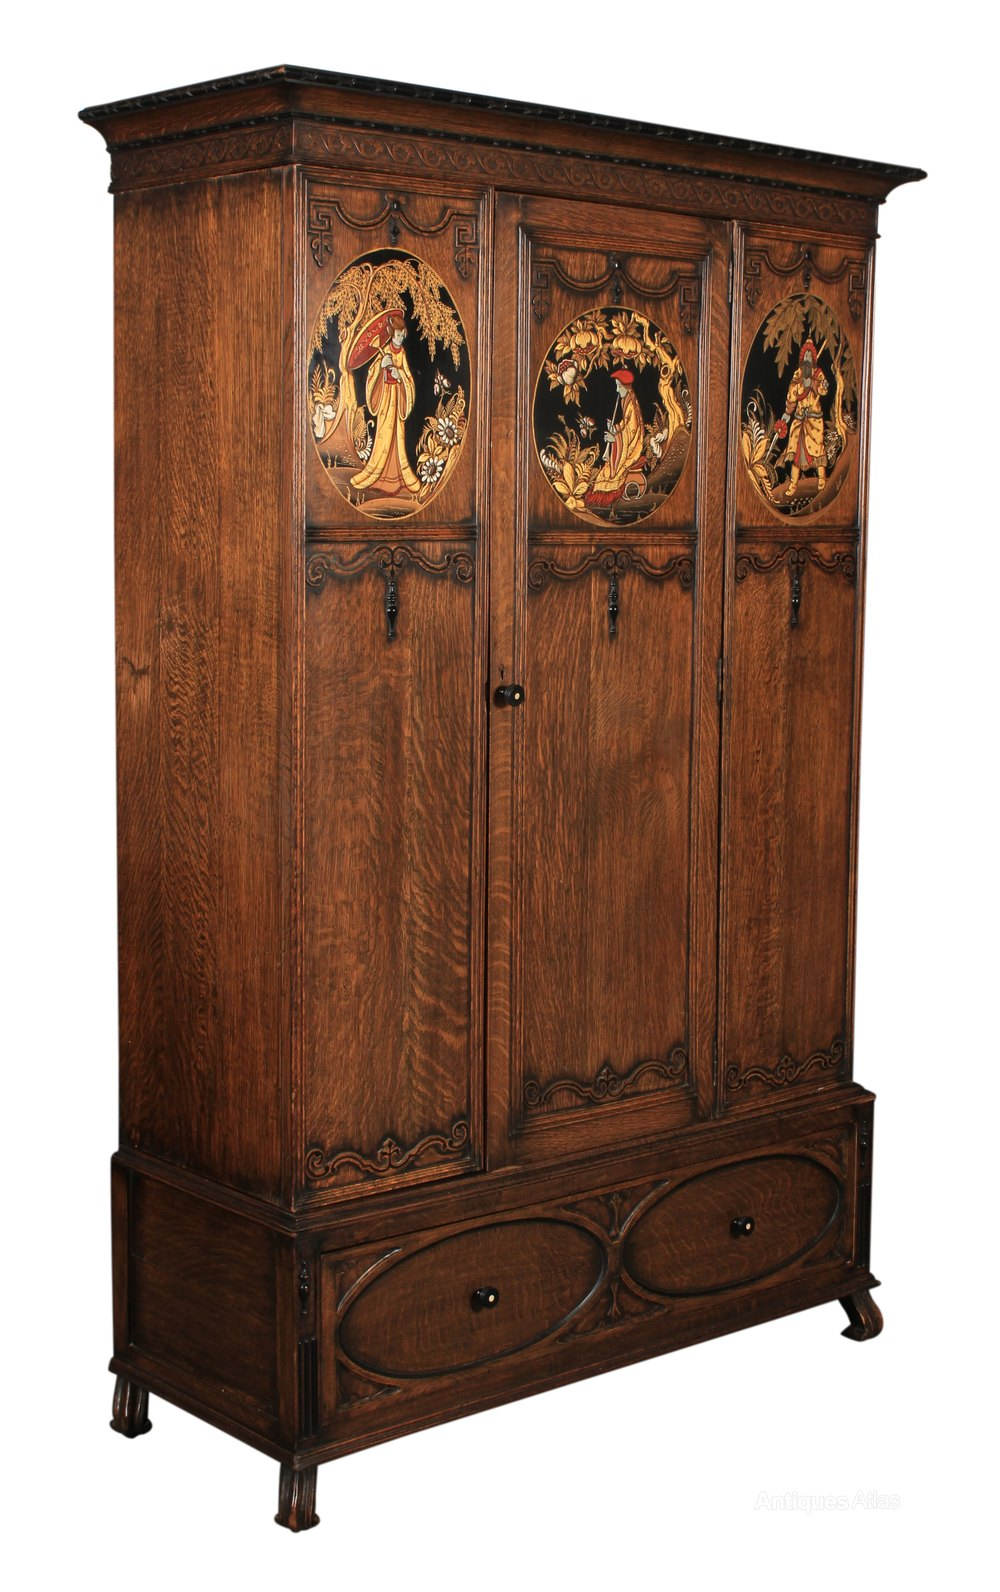 Solid Oak Chinoiserie Wardrobe Antiques Atlas Antique Wardrobe Antiques Solid Oak